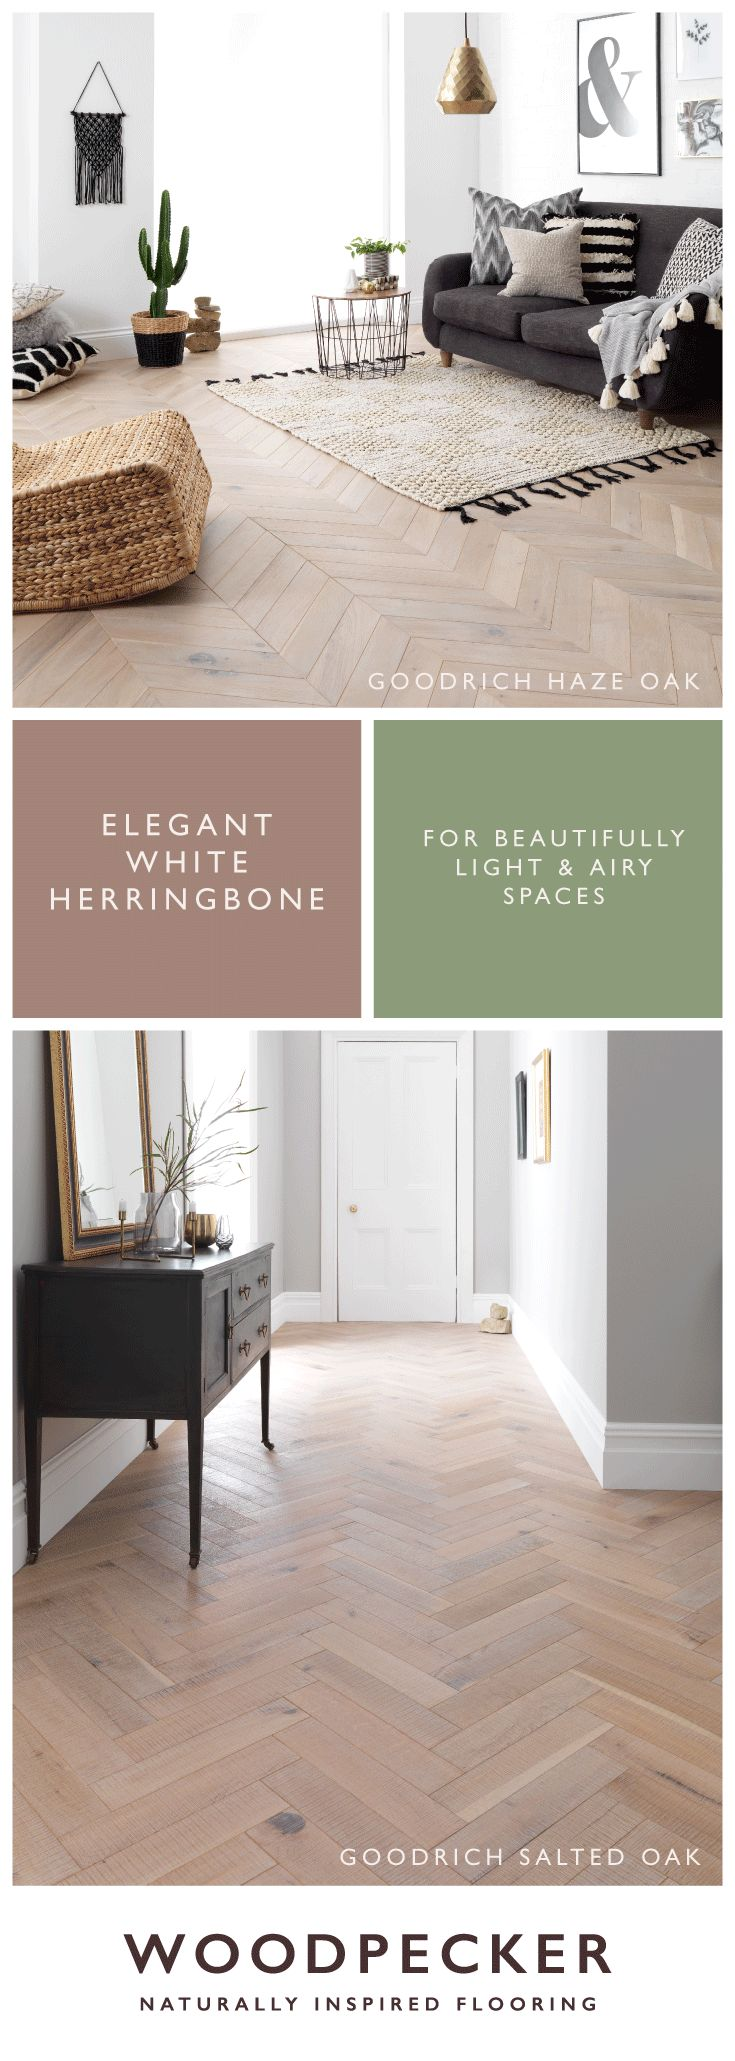 Elegant white herringbone flooring for beautifully light and airy spaces. Discover your favourite with free samples from our website.